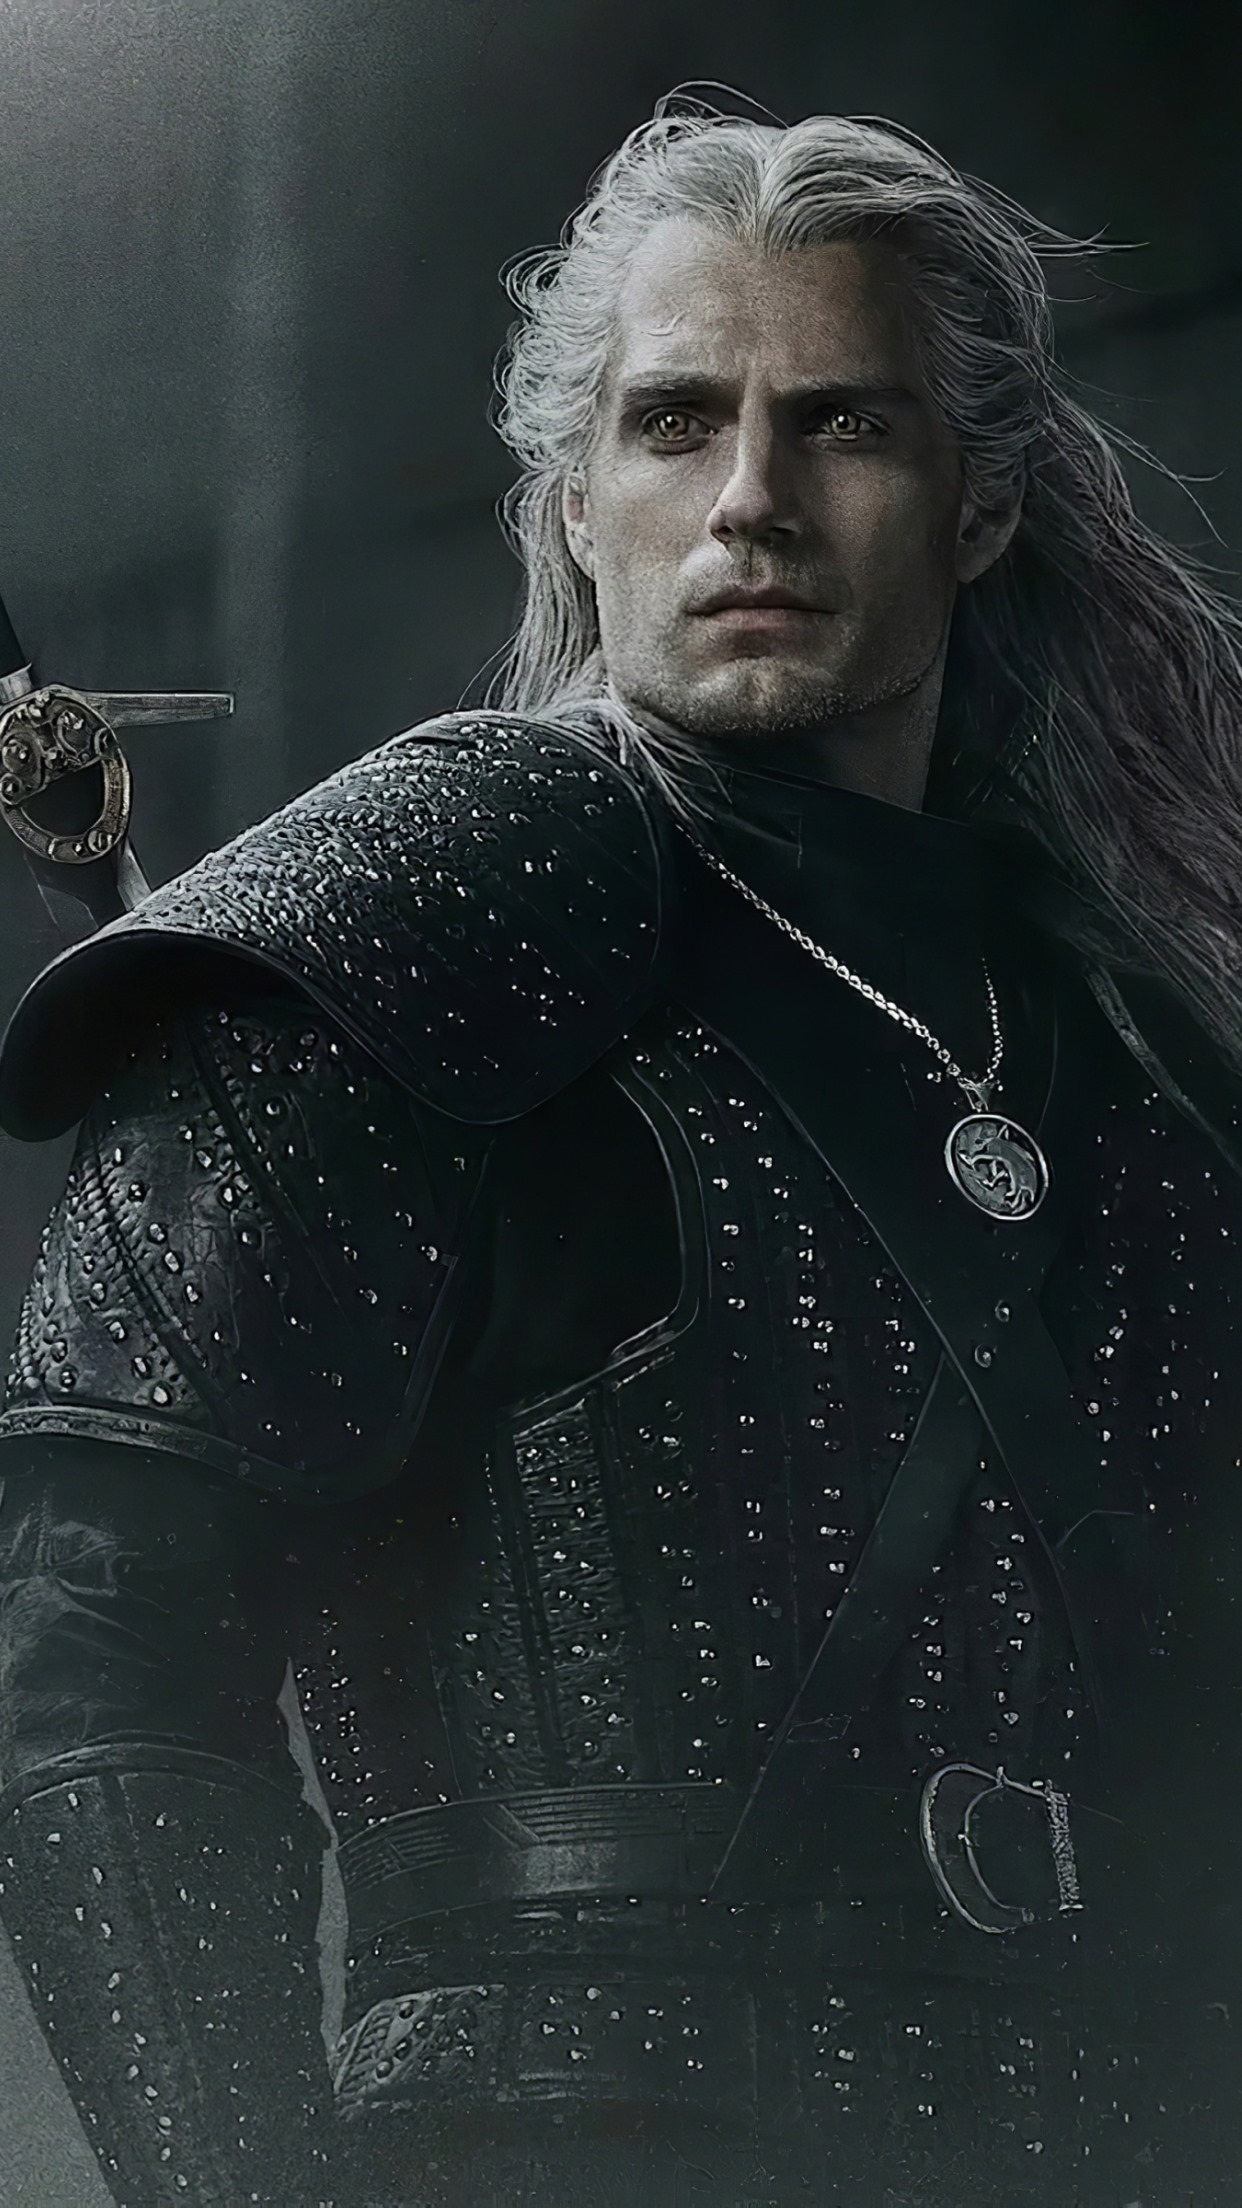 Henry Cavli in The Witcher wallpaper 1242x2208